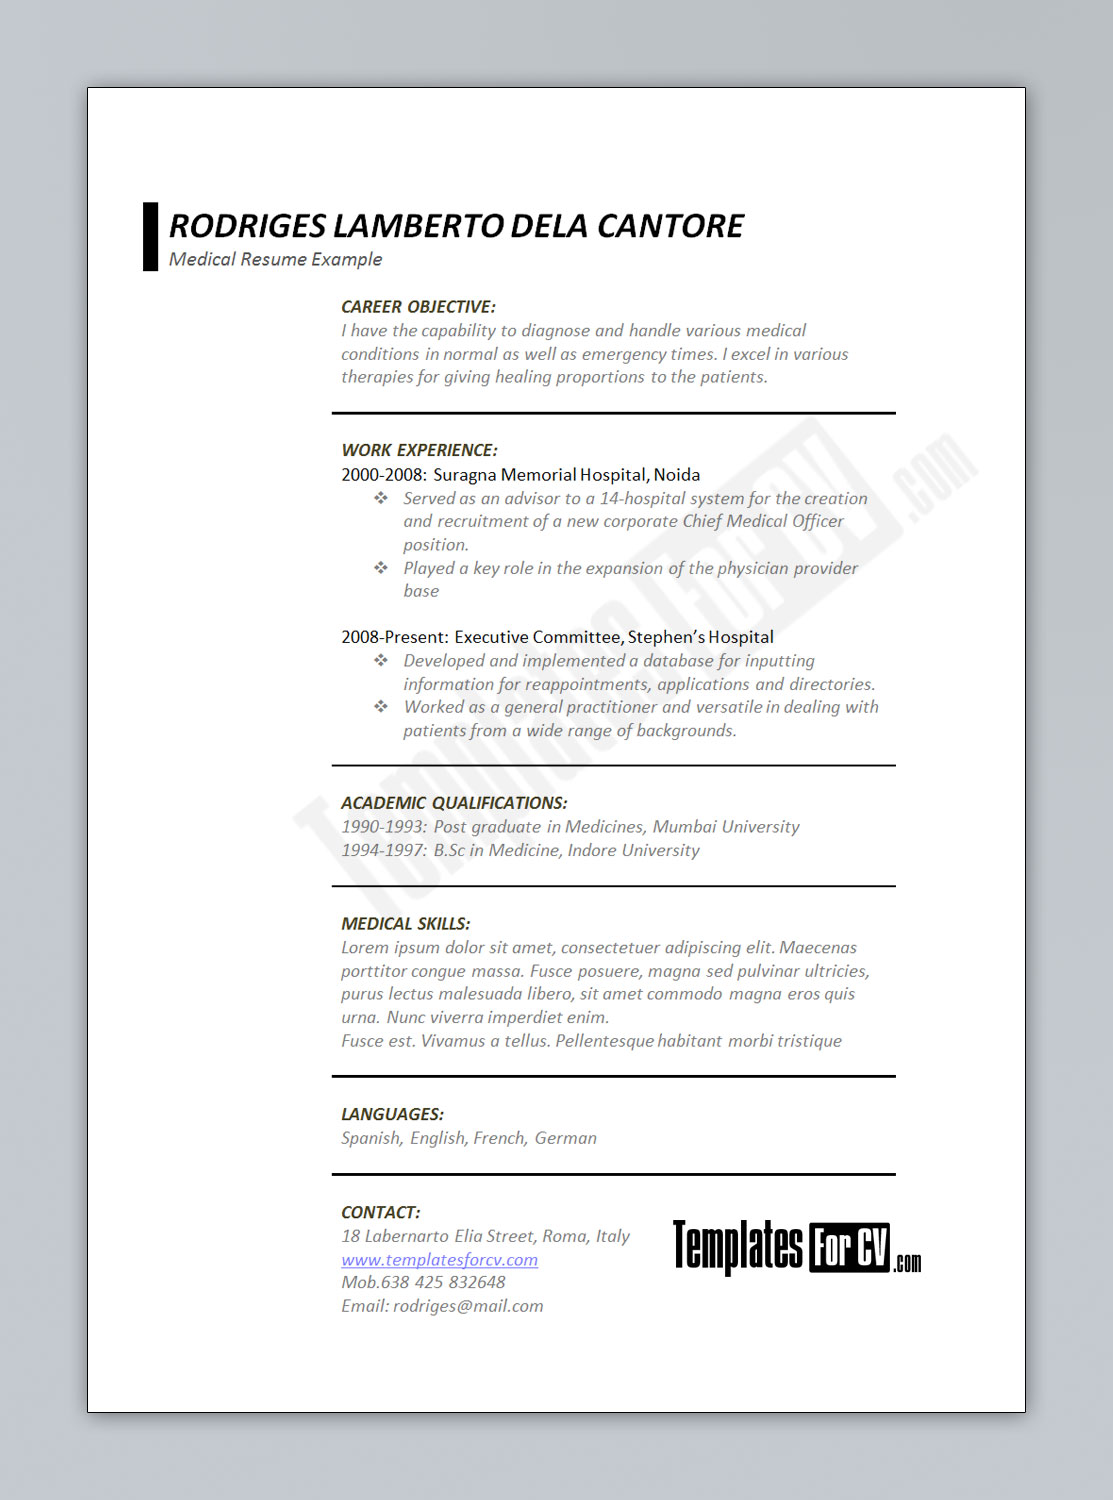 medical cv template doctor resume example rodriges musical theatre casual teaching rn Resume Medical Doctor Resume Example